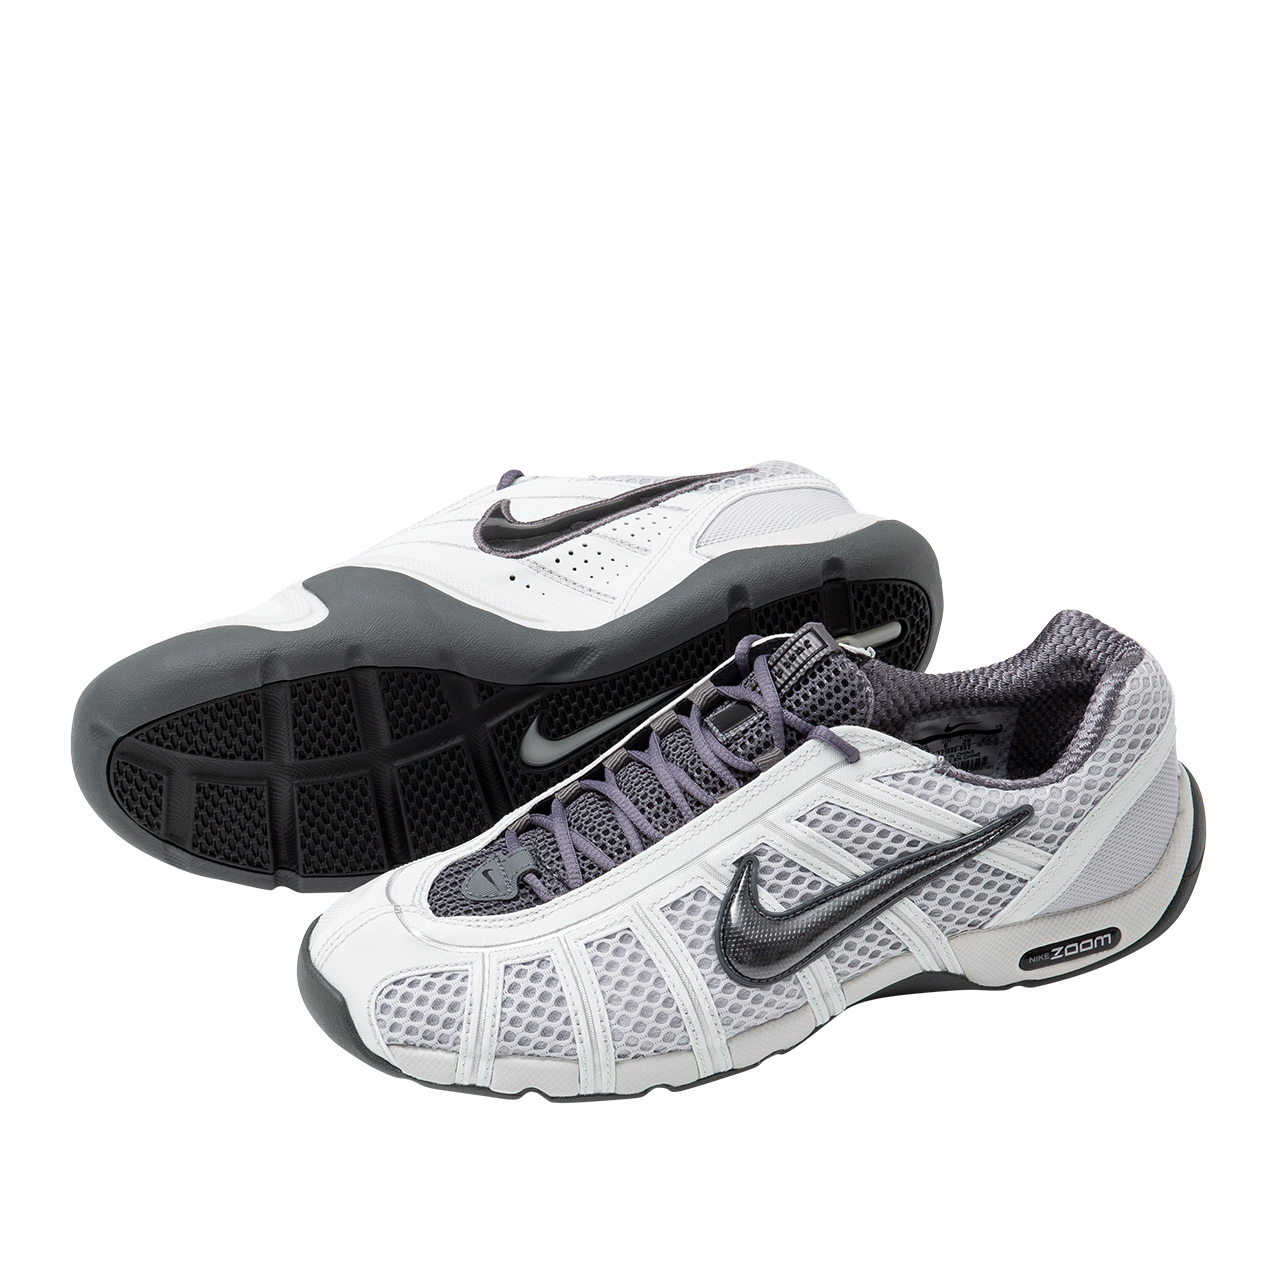 fencing shoes NIKE Air Zoom Fencer, silver